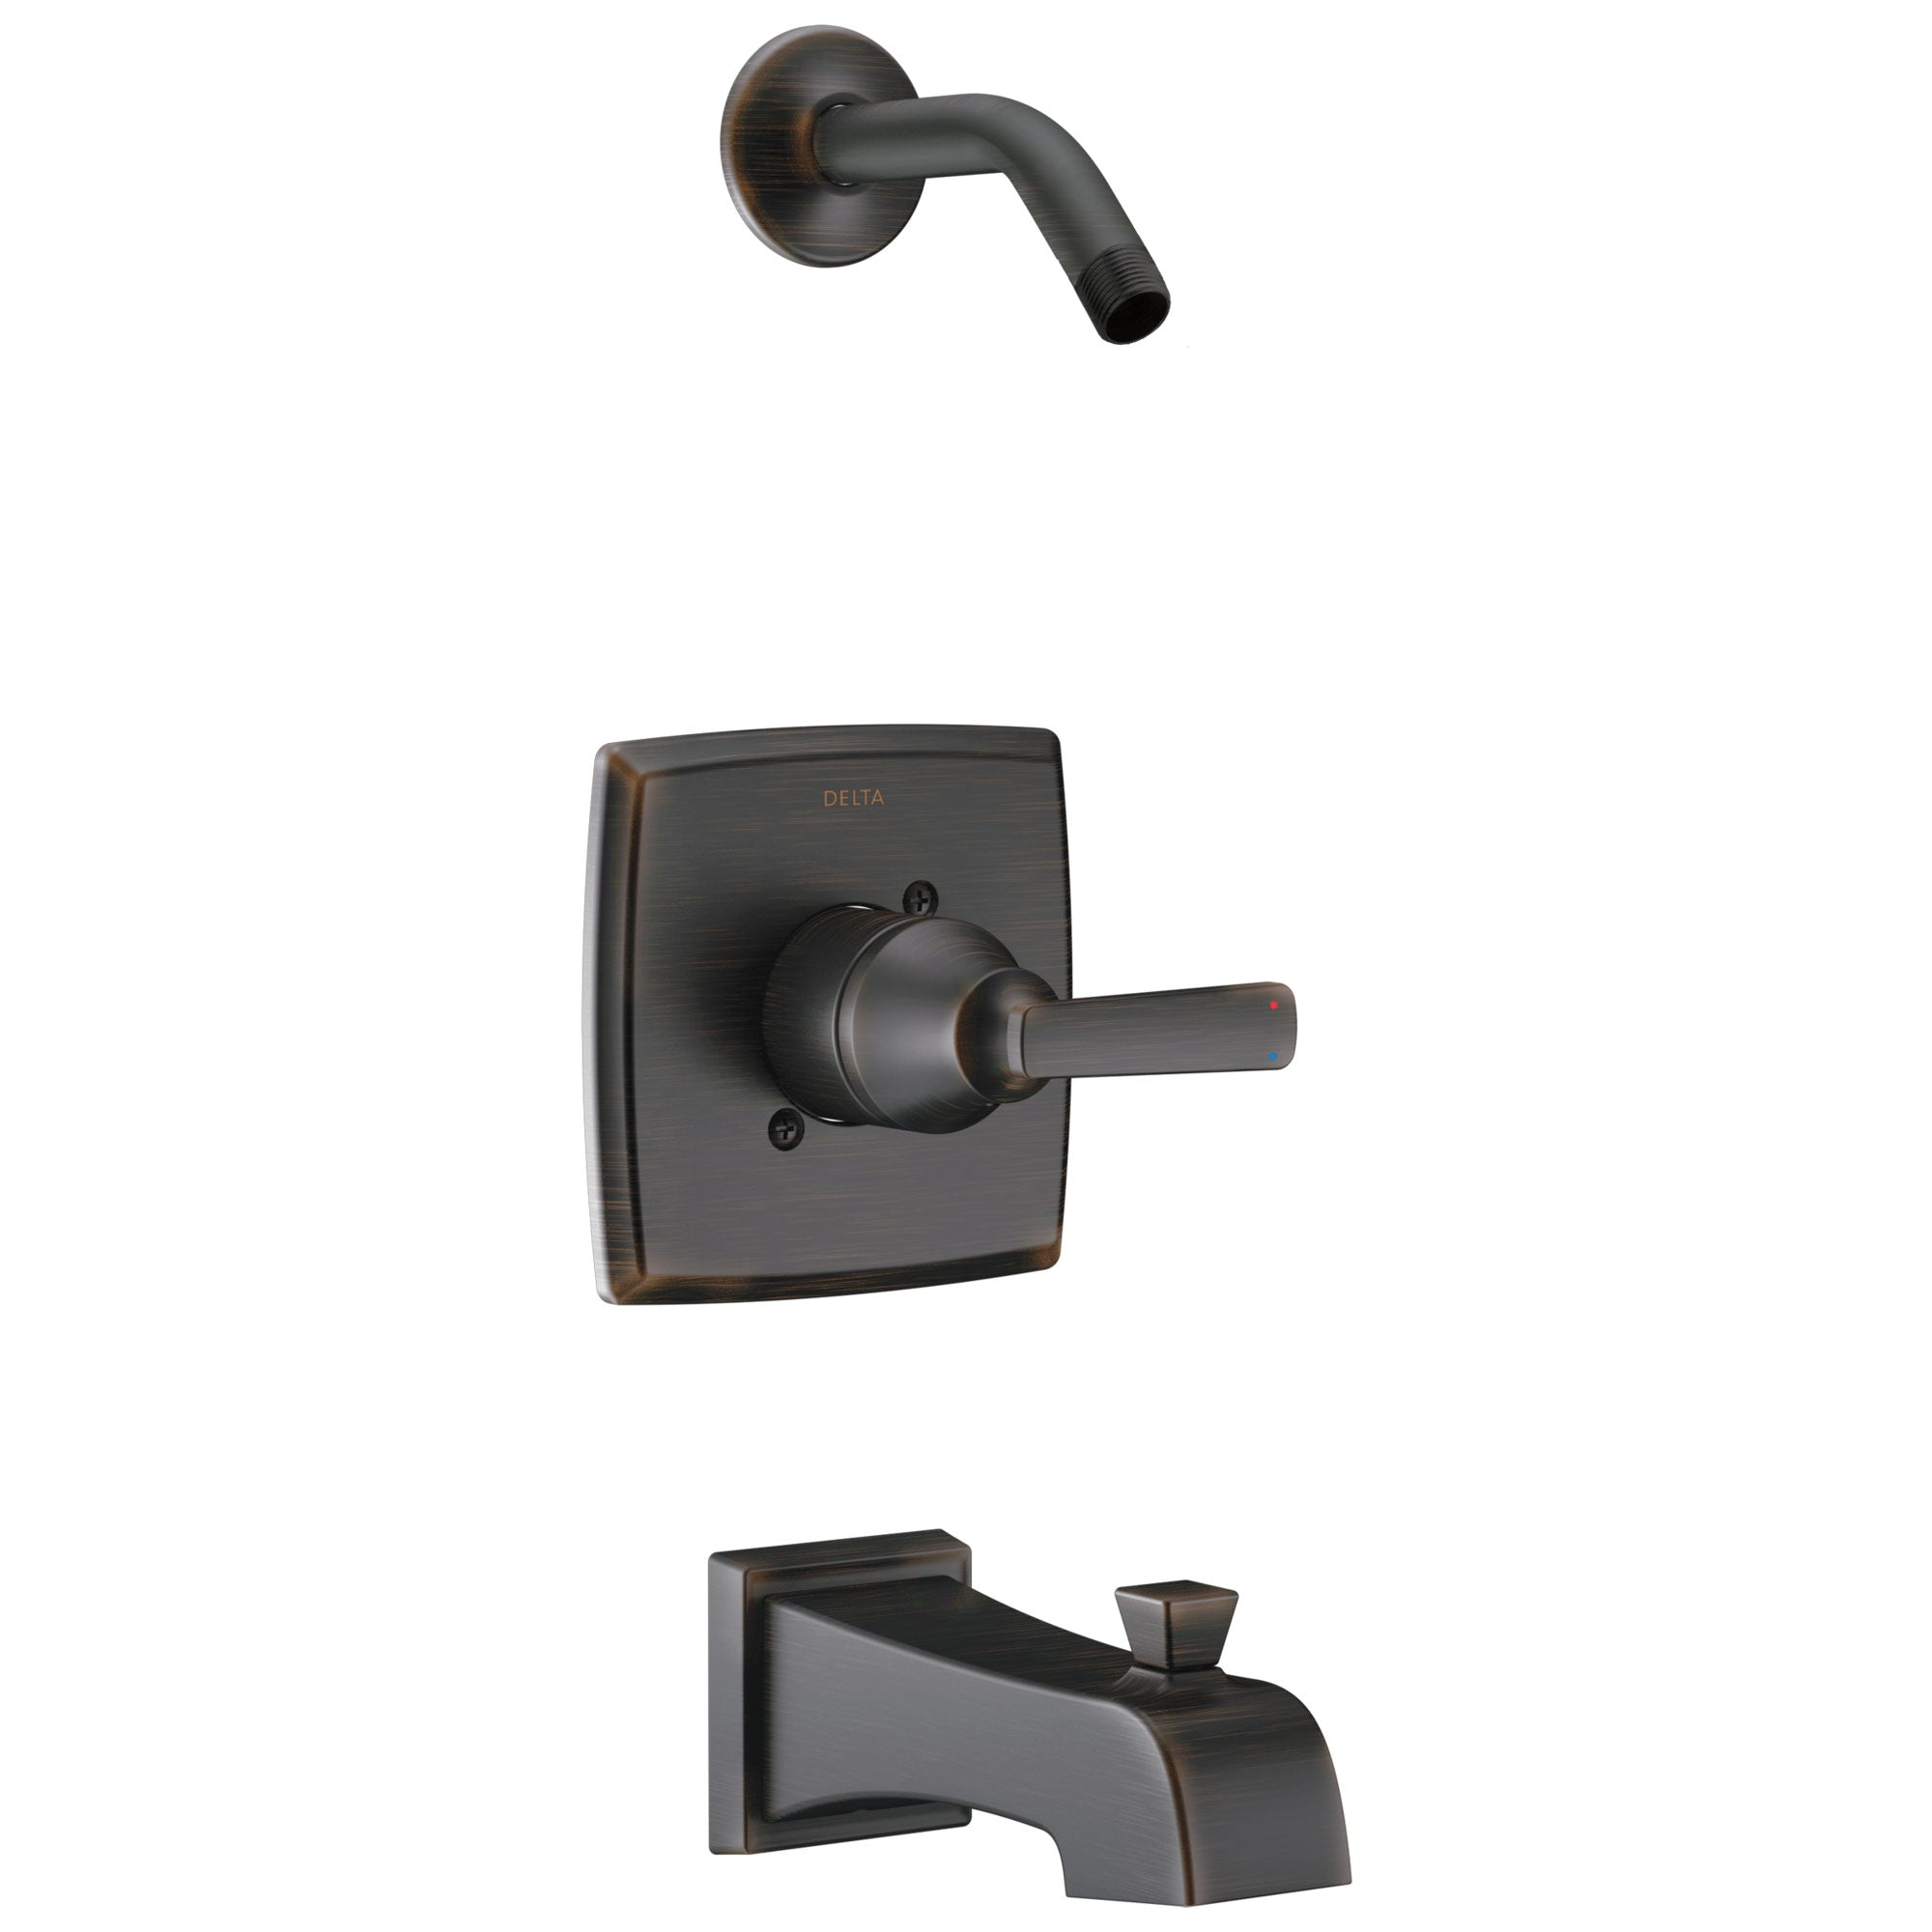 Delta Ashlyn Collection Venetian Bronze Monitor 14 Stylish Tub & Shower Combination Faucet Trim - Less Showerhead (Valve Sold Separately) DT14464RBLHD